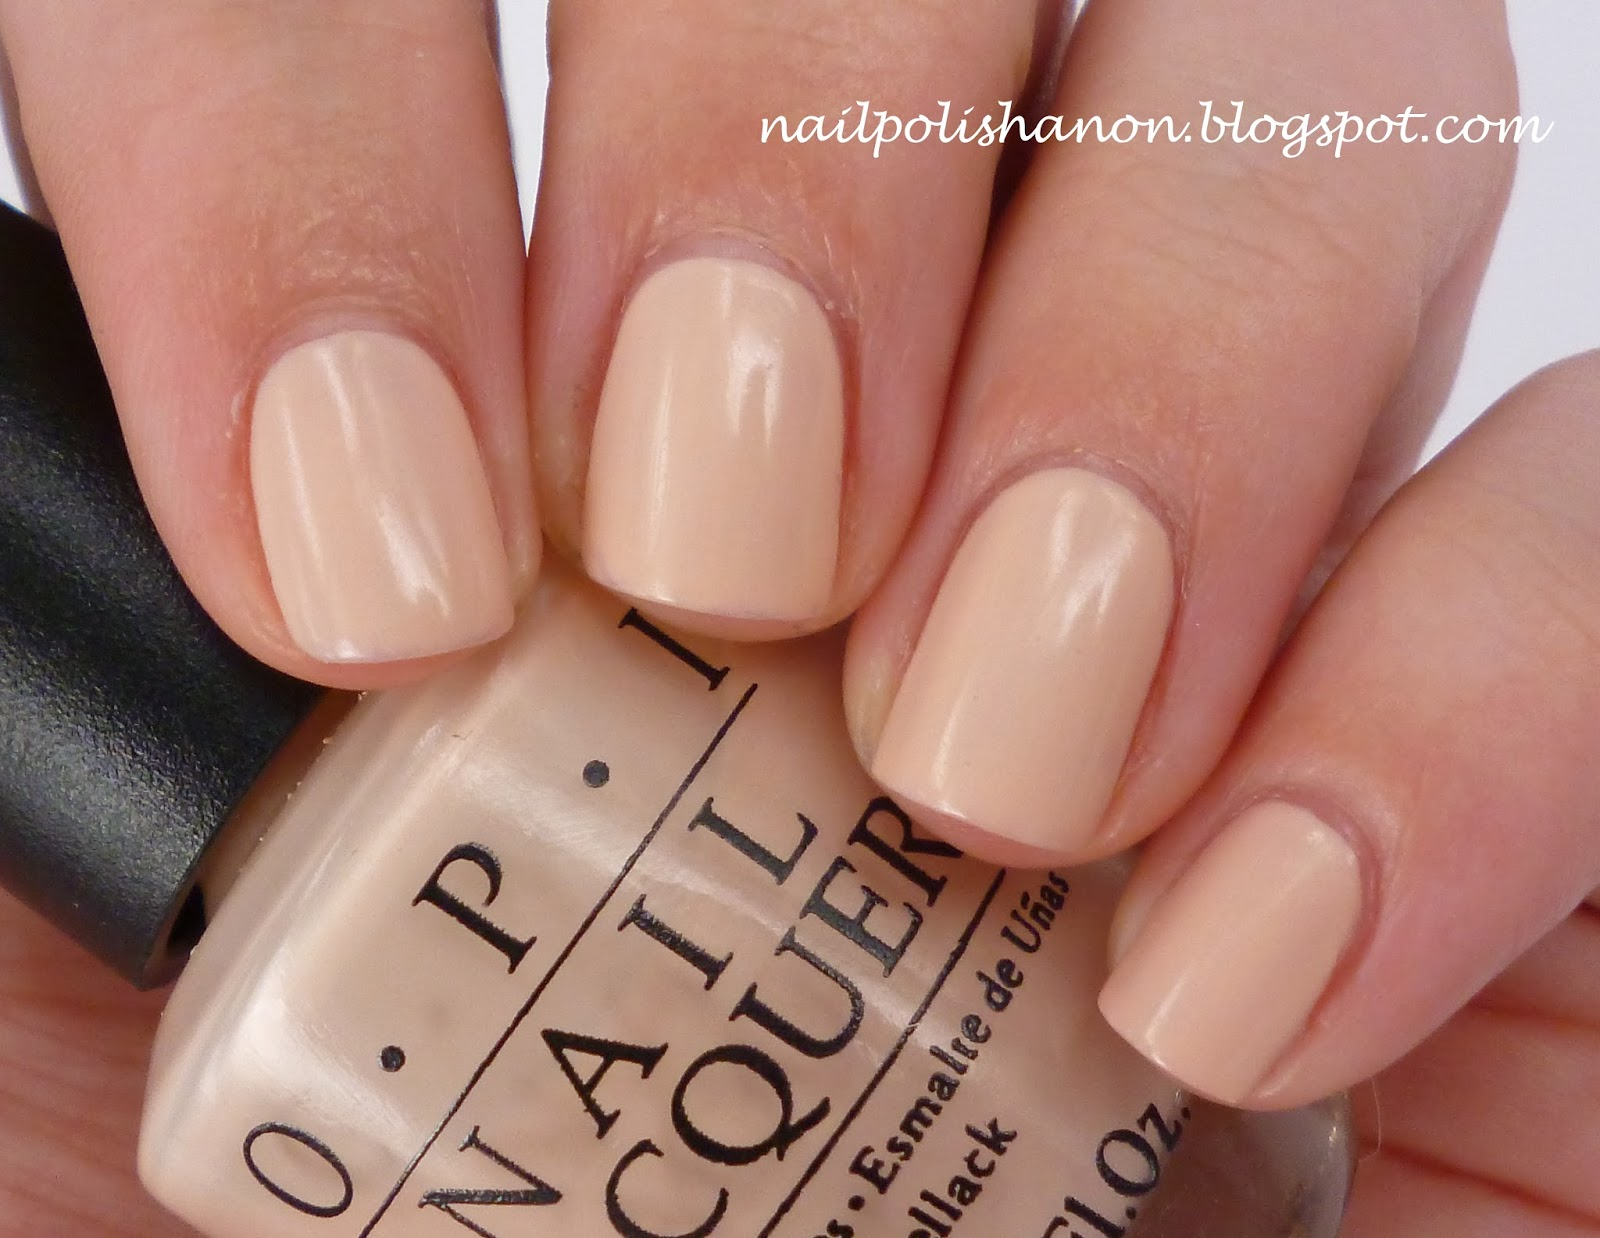 Nail Polish Anon: My OPI Delicates: Let Them Eat Rice Cake & Have A ...